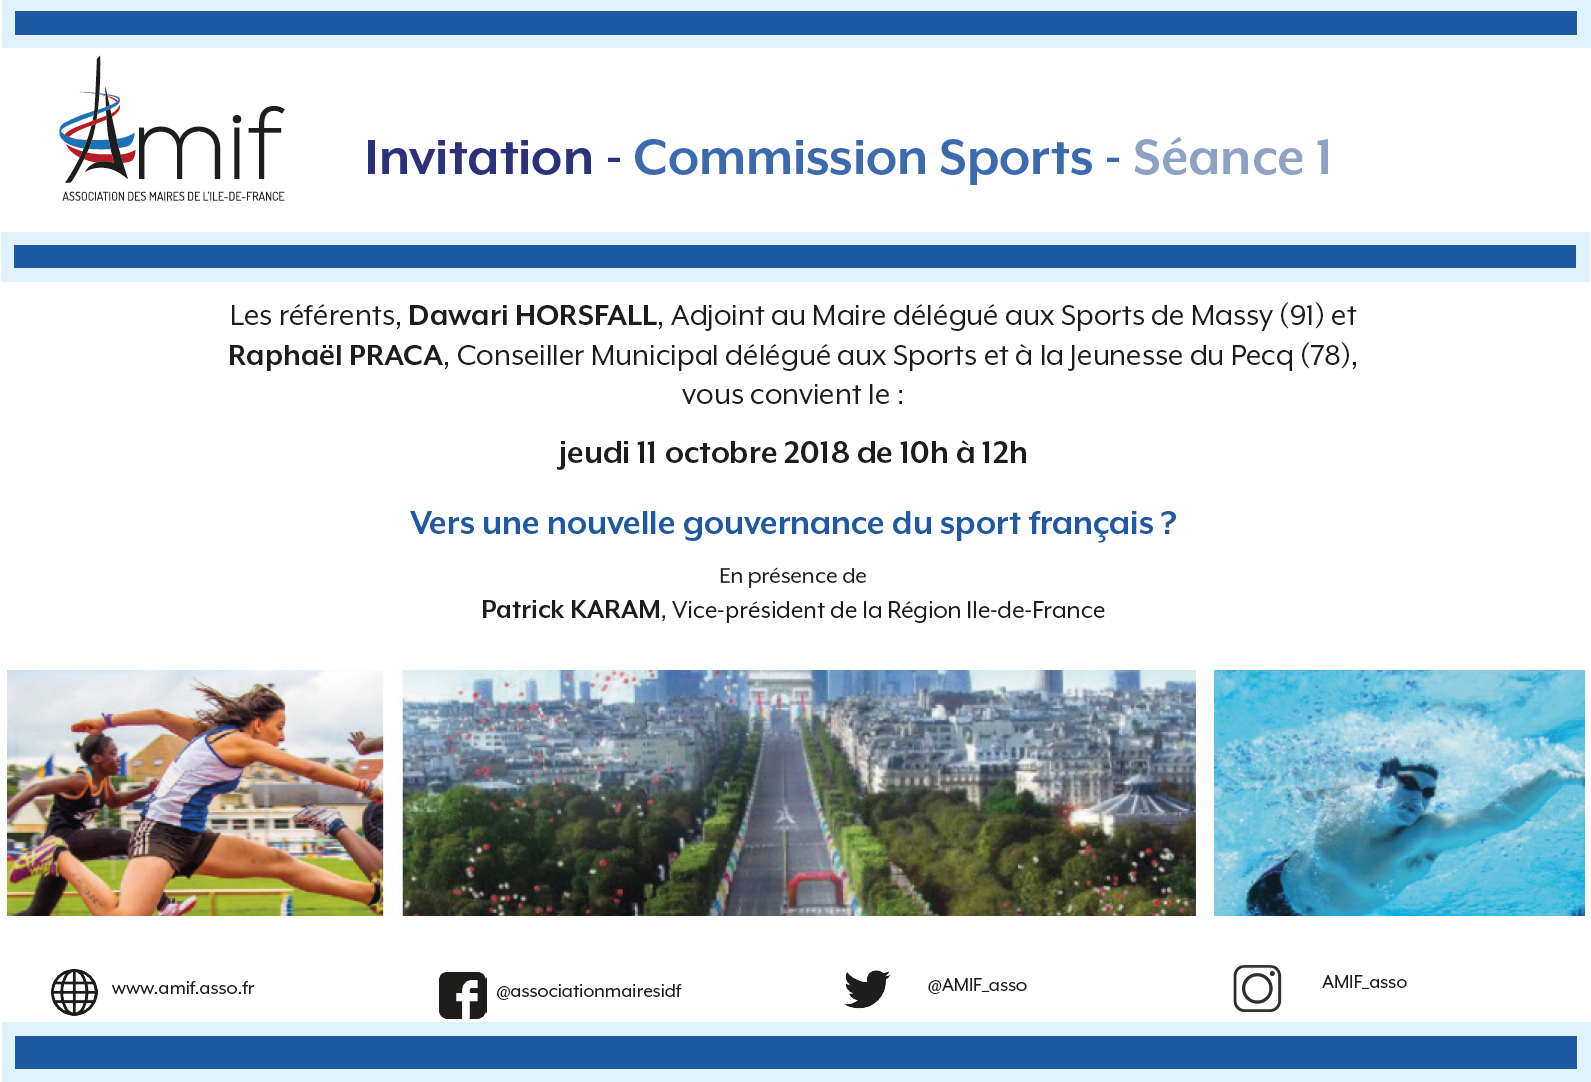 CommissionSportsSeance111octobre 2018v3